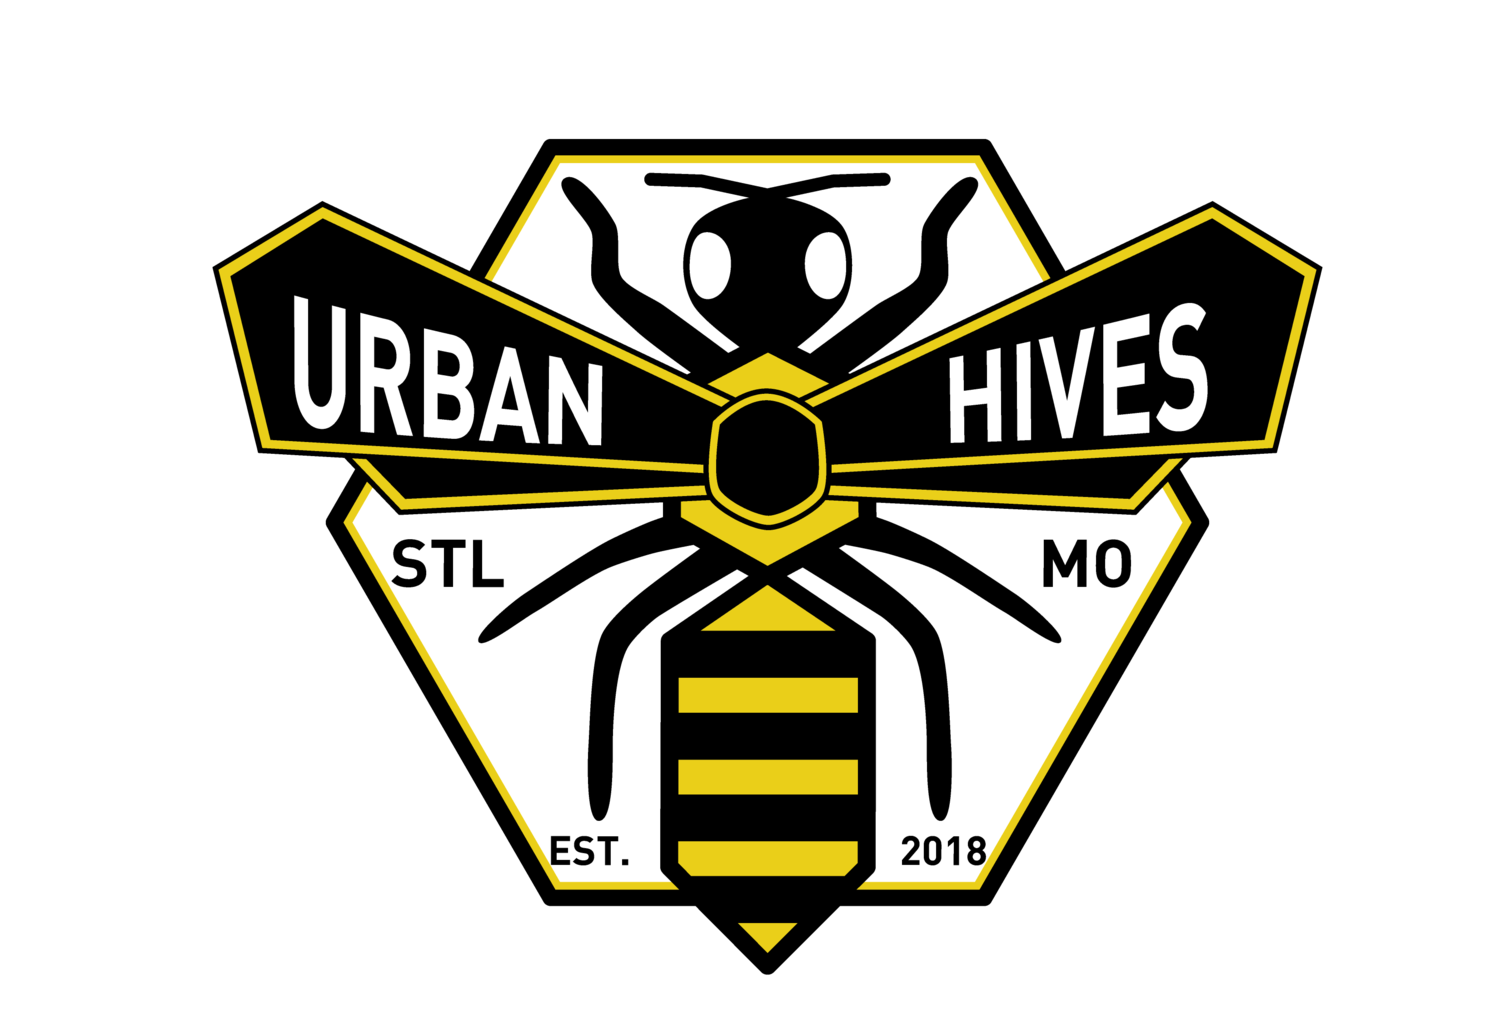 URBAN HIVES LLC